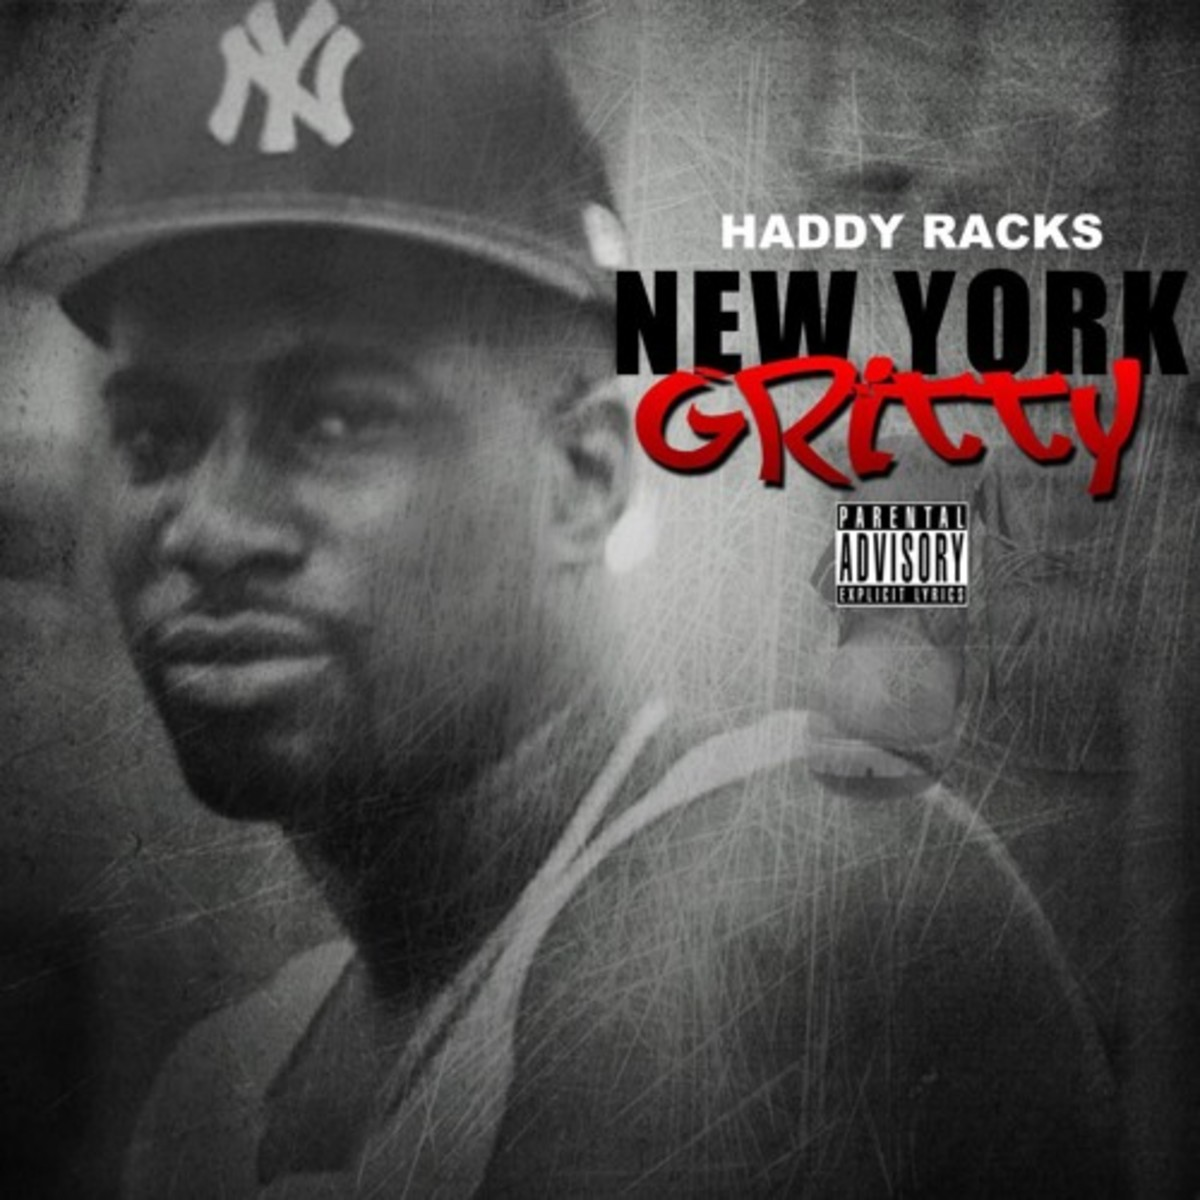 haddy-racks-new-york-gritty.jpg